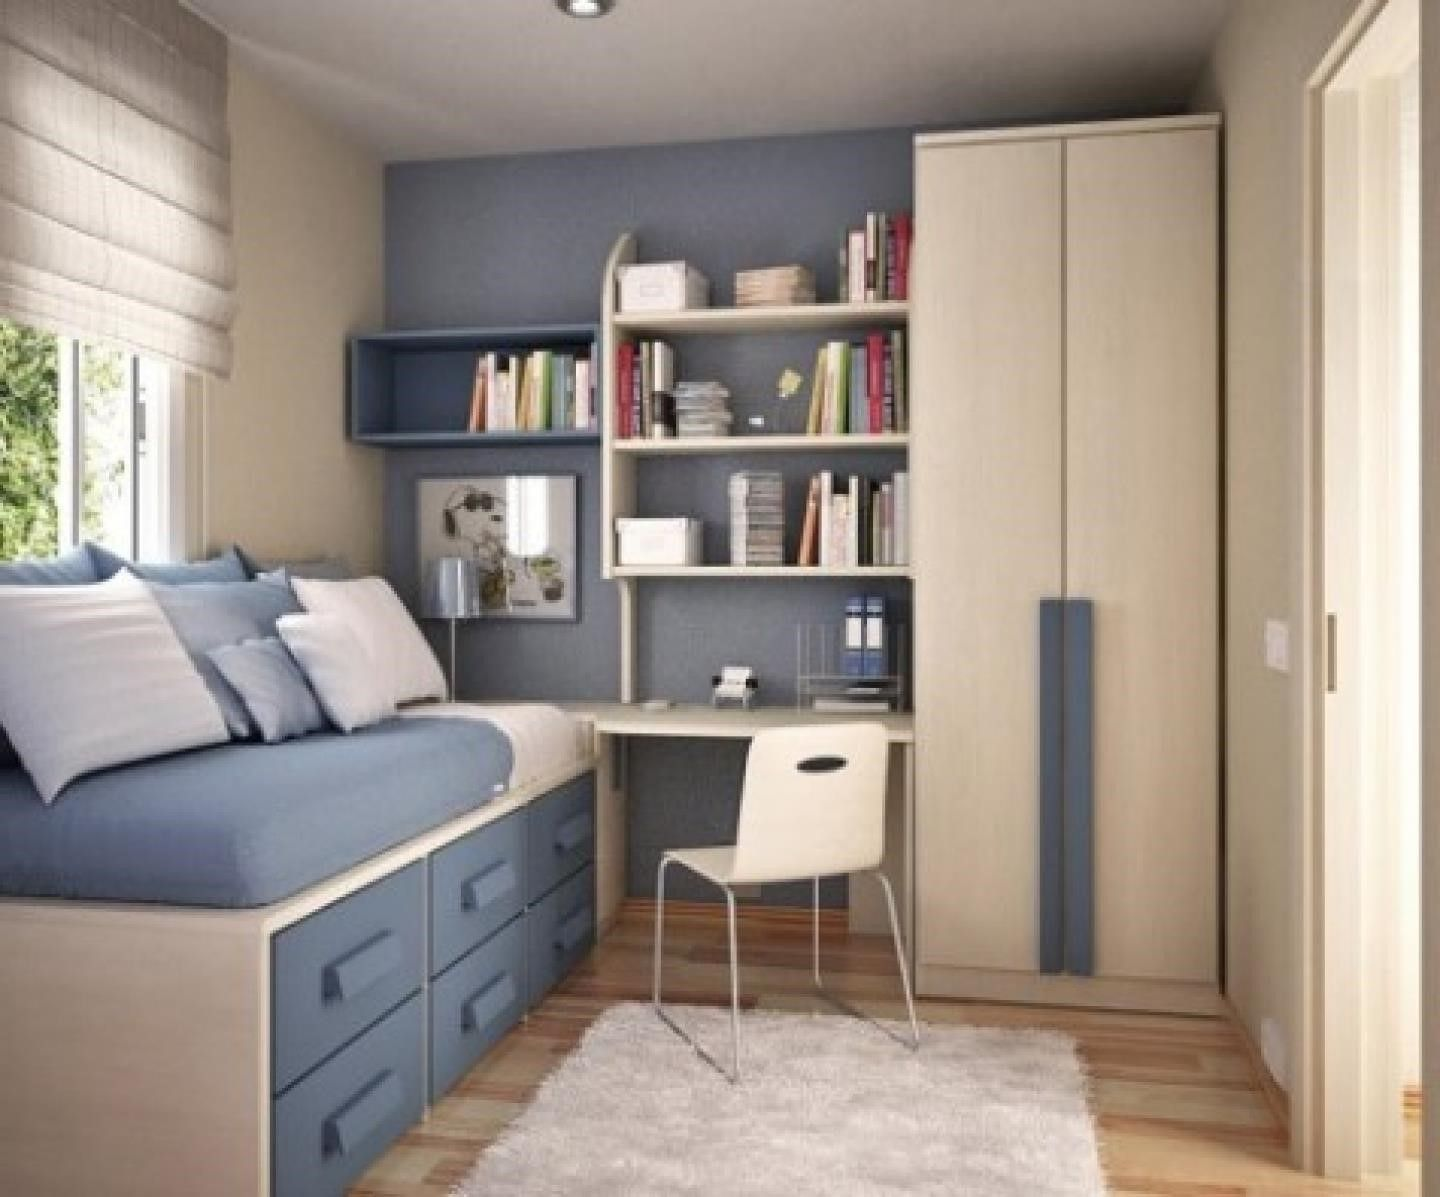 Room  Bedroom : Small Bedroom Ideas With Full Bed ...